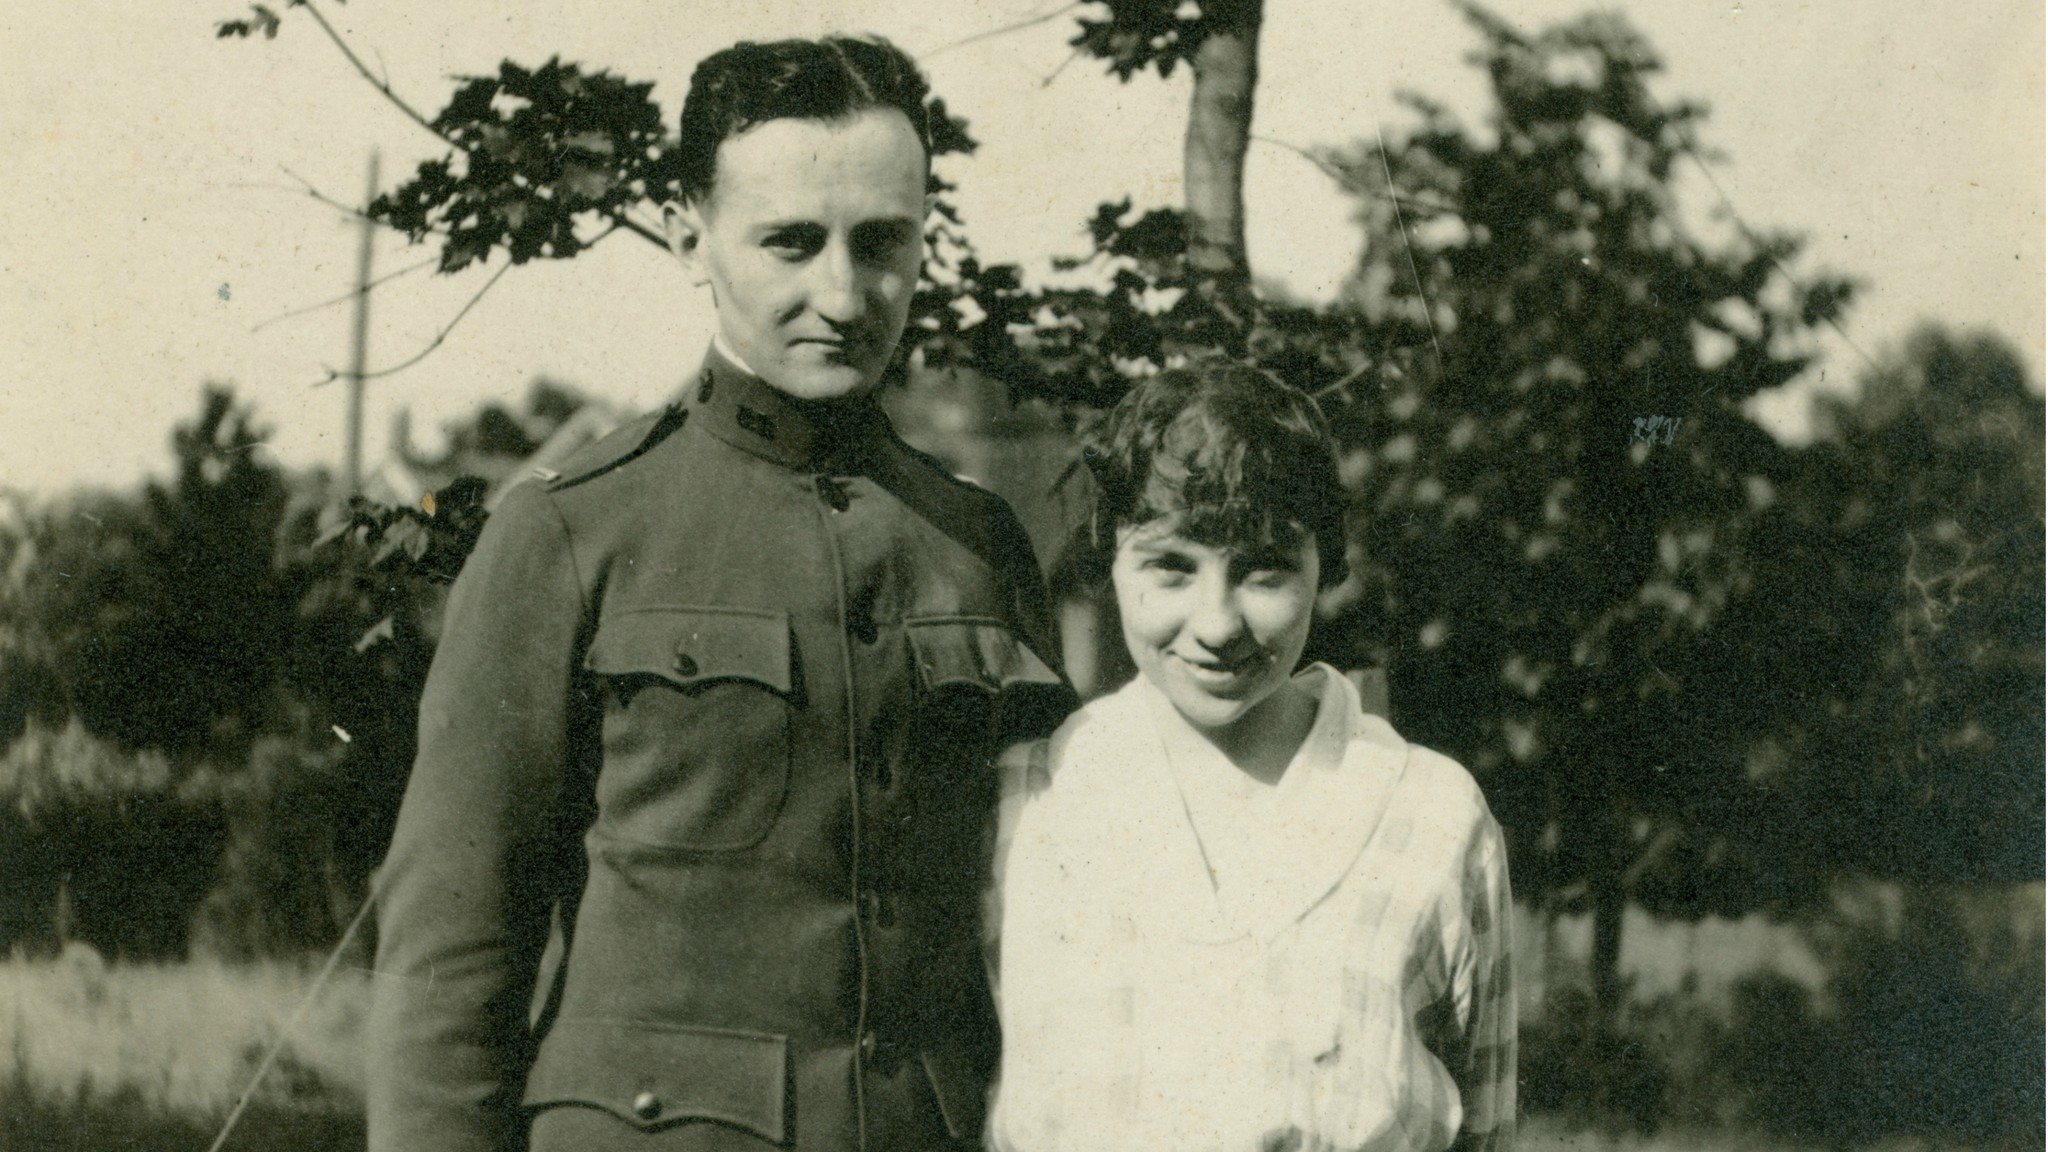 """A photo of Elizebeth Friedman Smith with William Smith, around 1918, from the book """"The Woman Who Smashed Codes."""""""